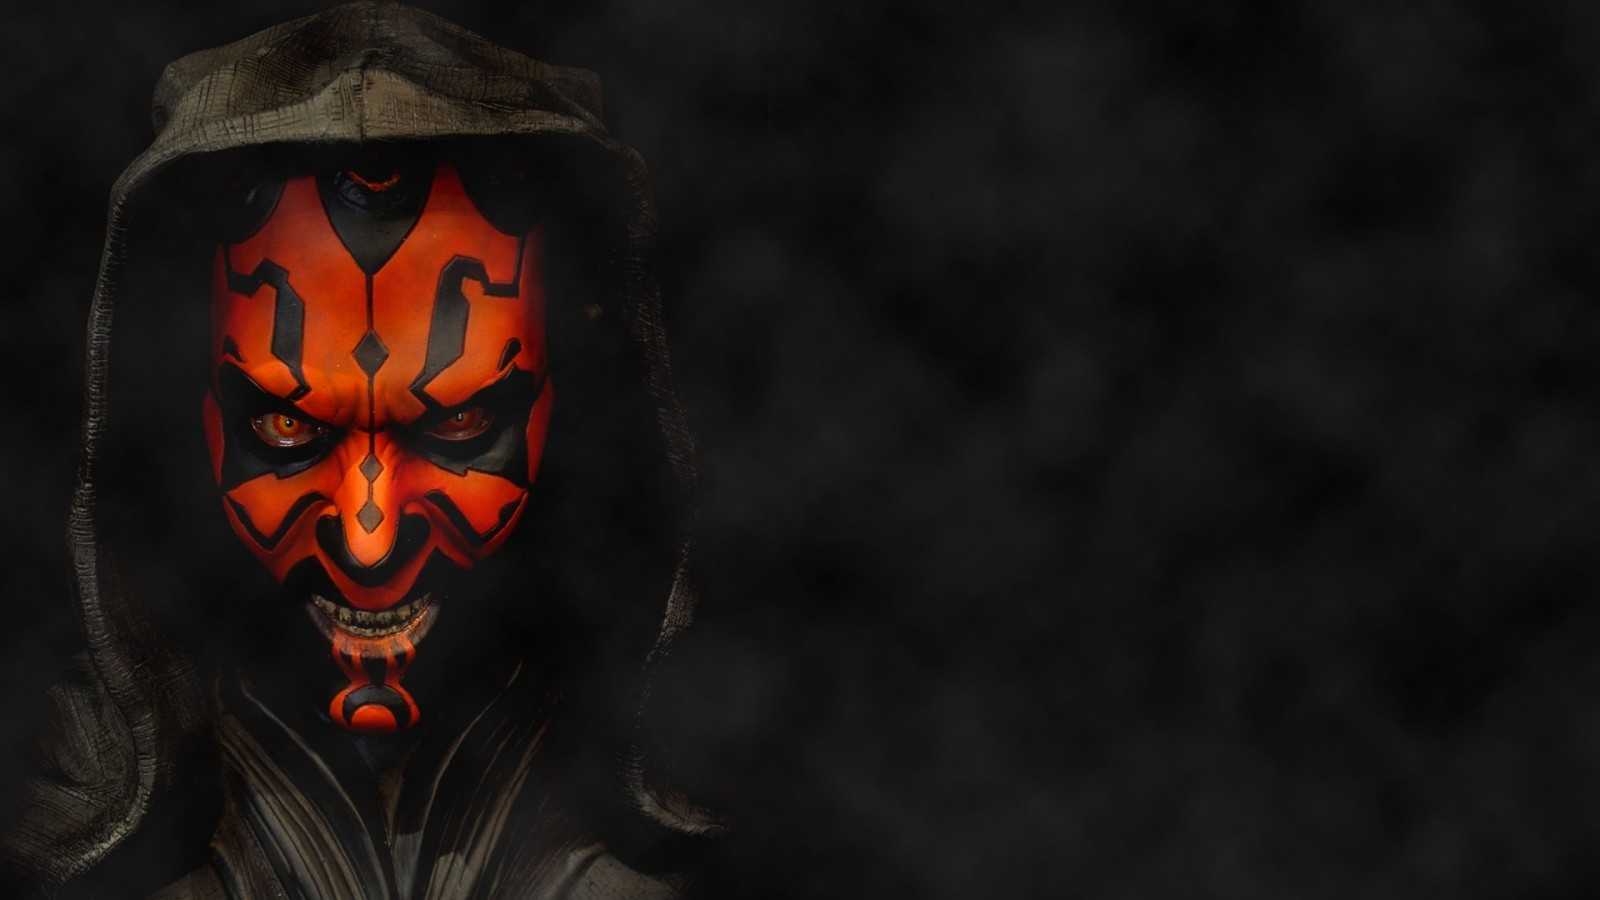 Darth Maul   Star Wars wallpaper   HD Wallpaper Expert 1600x900